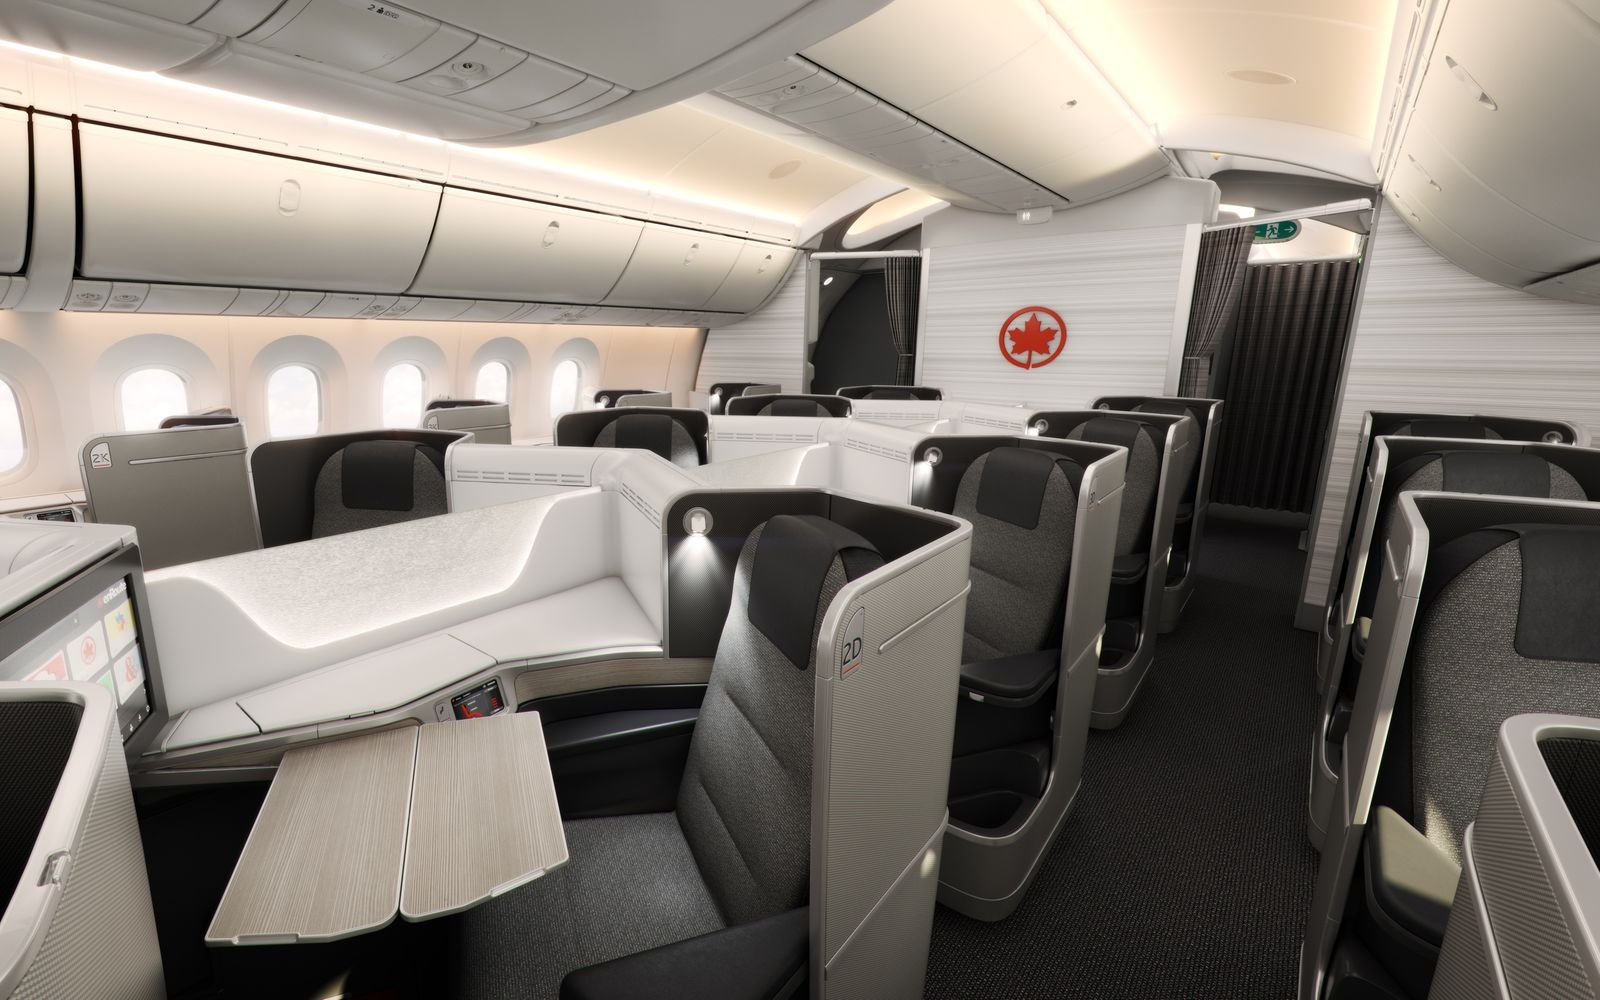 Air Canada Major Airlines International Airlines